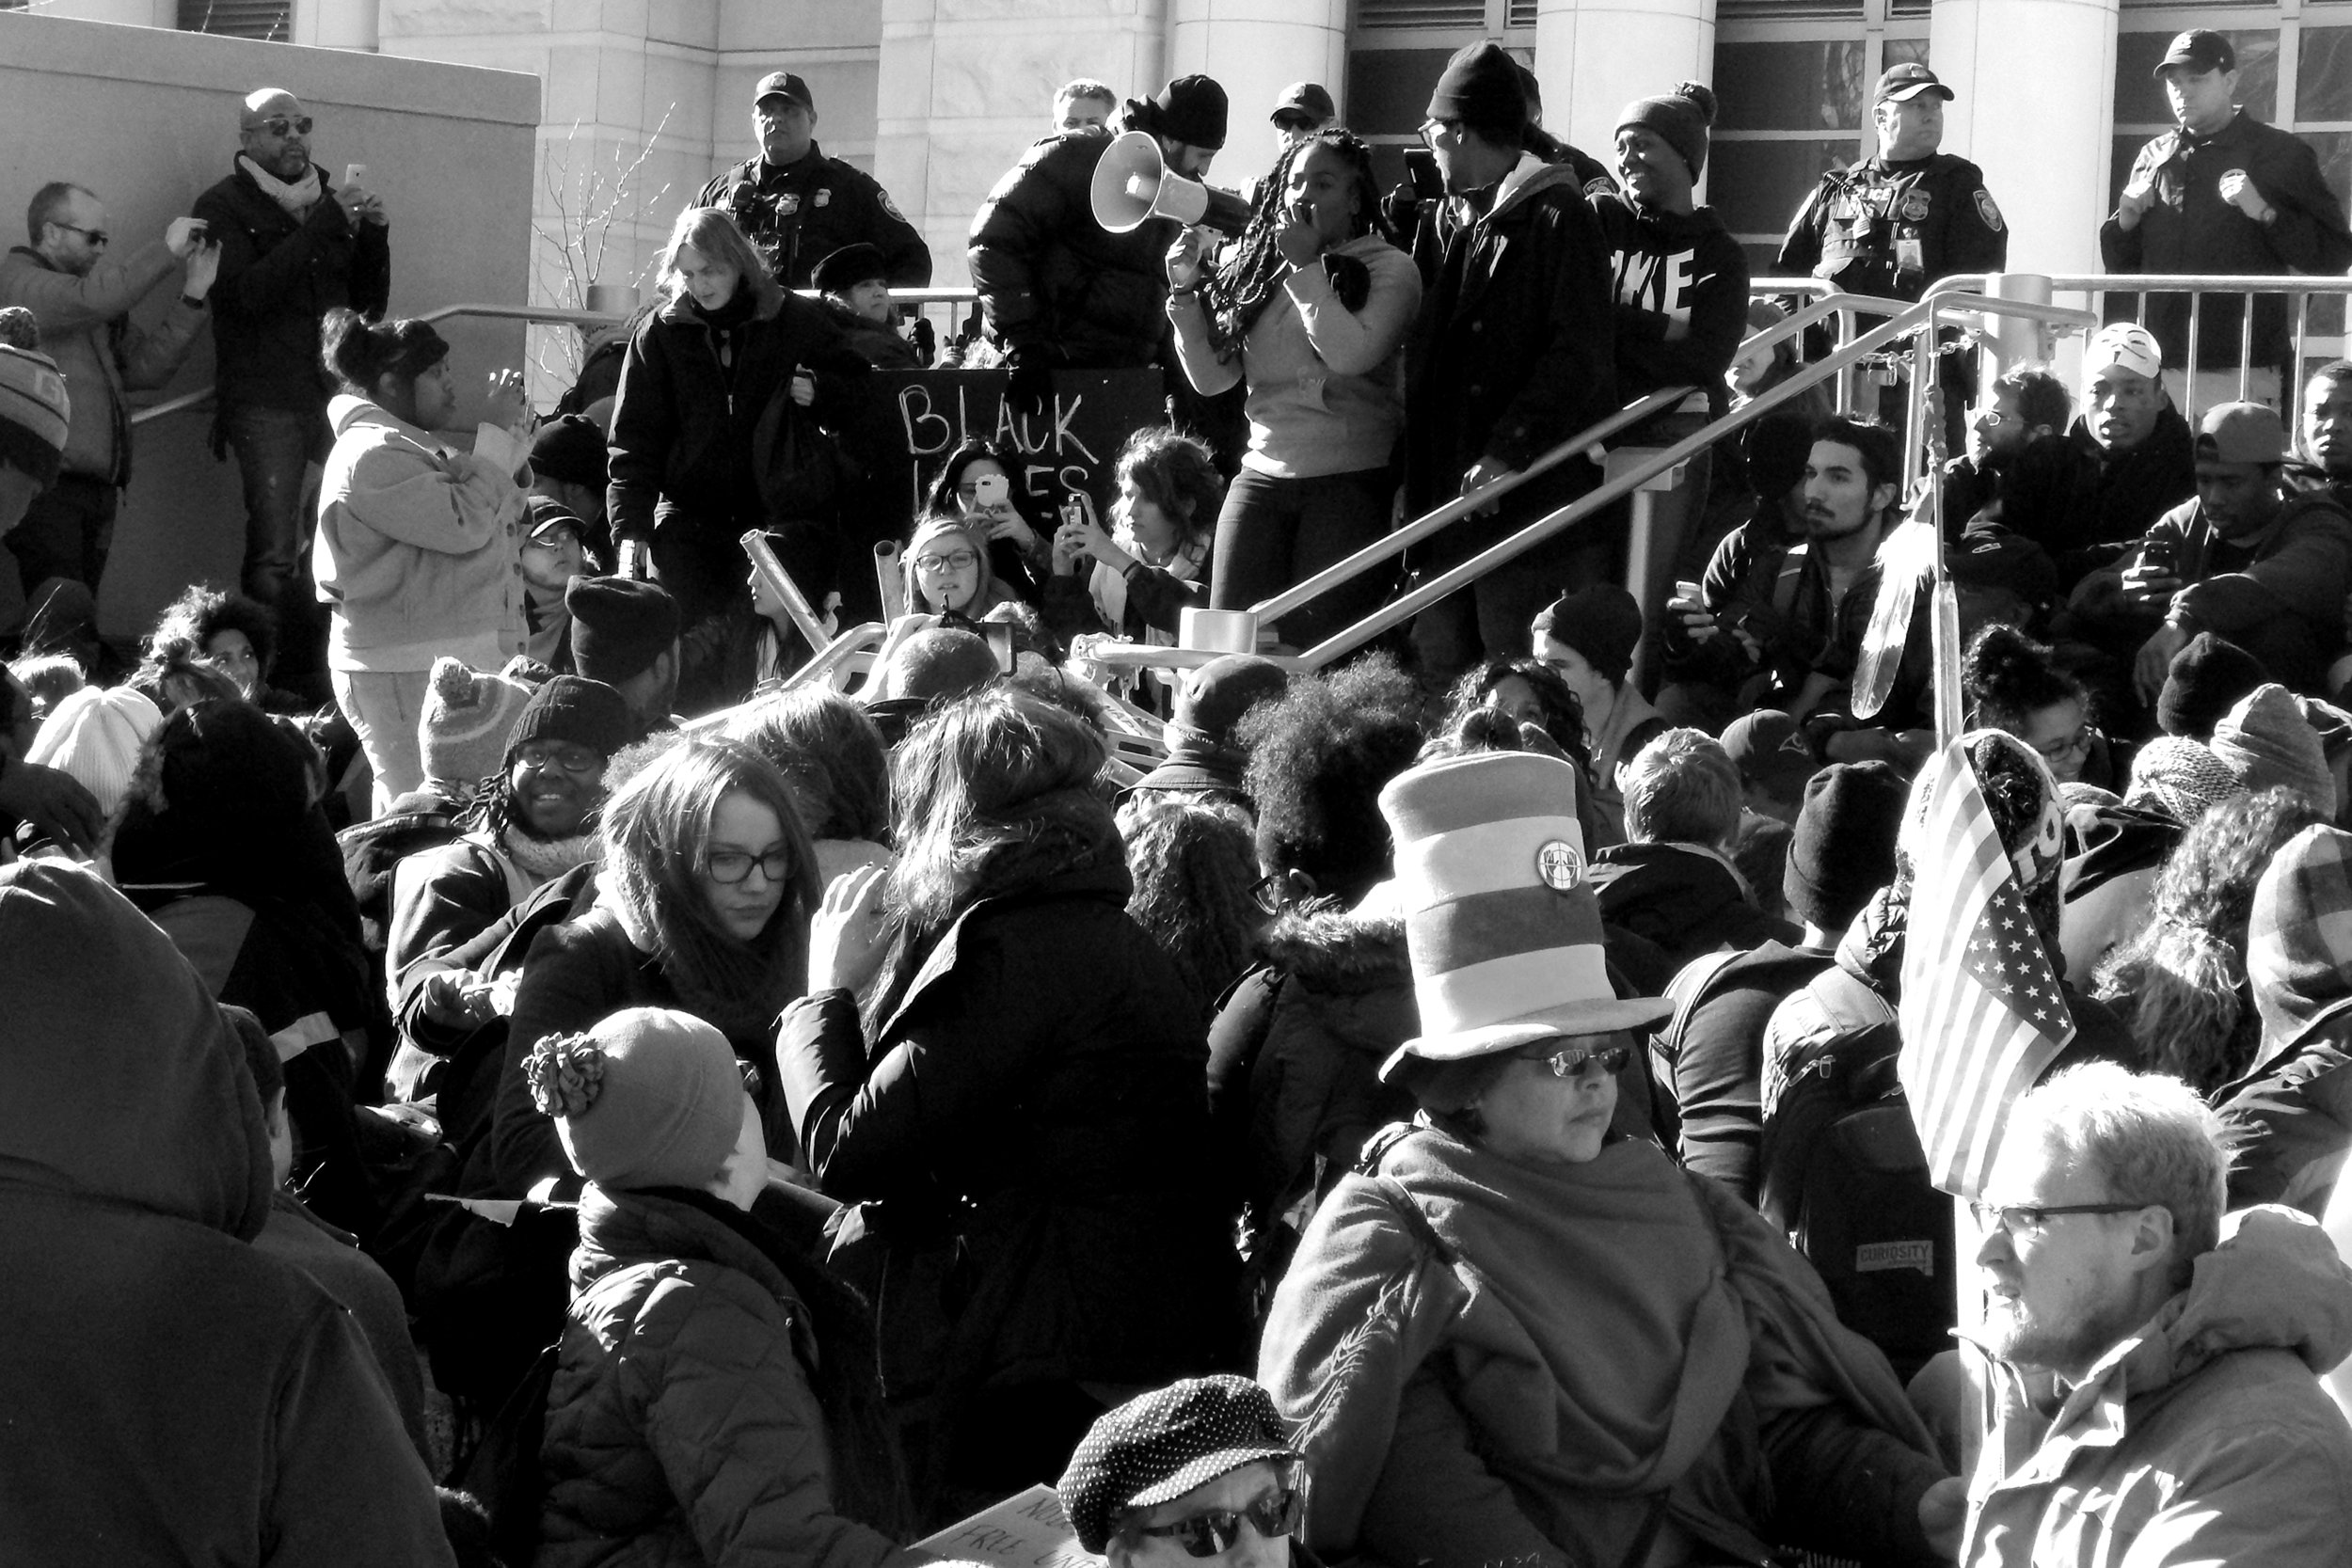 Black Lives Matter protest in solidarity with the Ferguson struggle in St. Louis (late 2014)